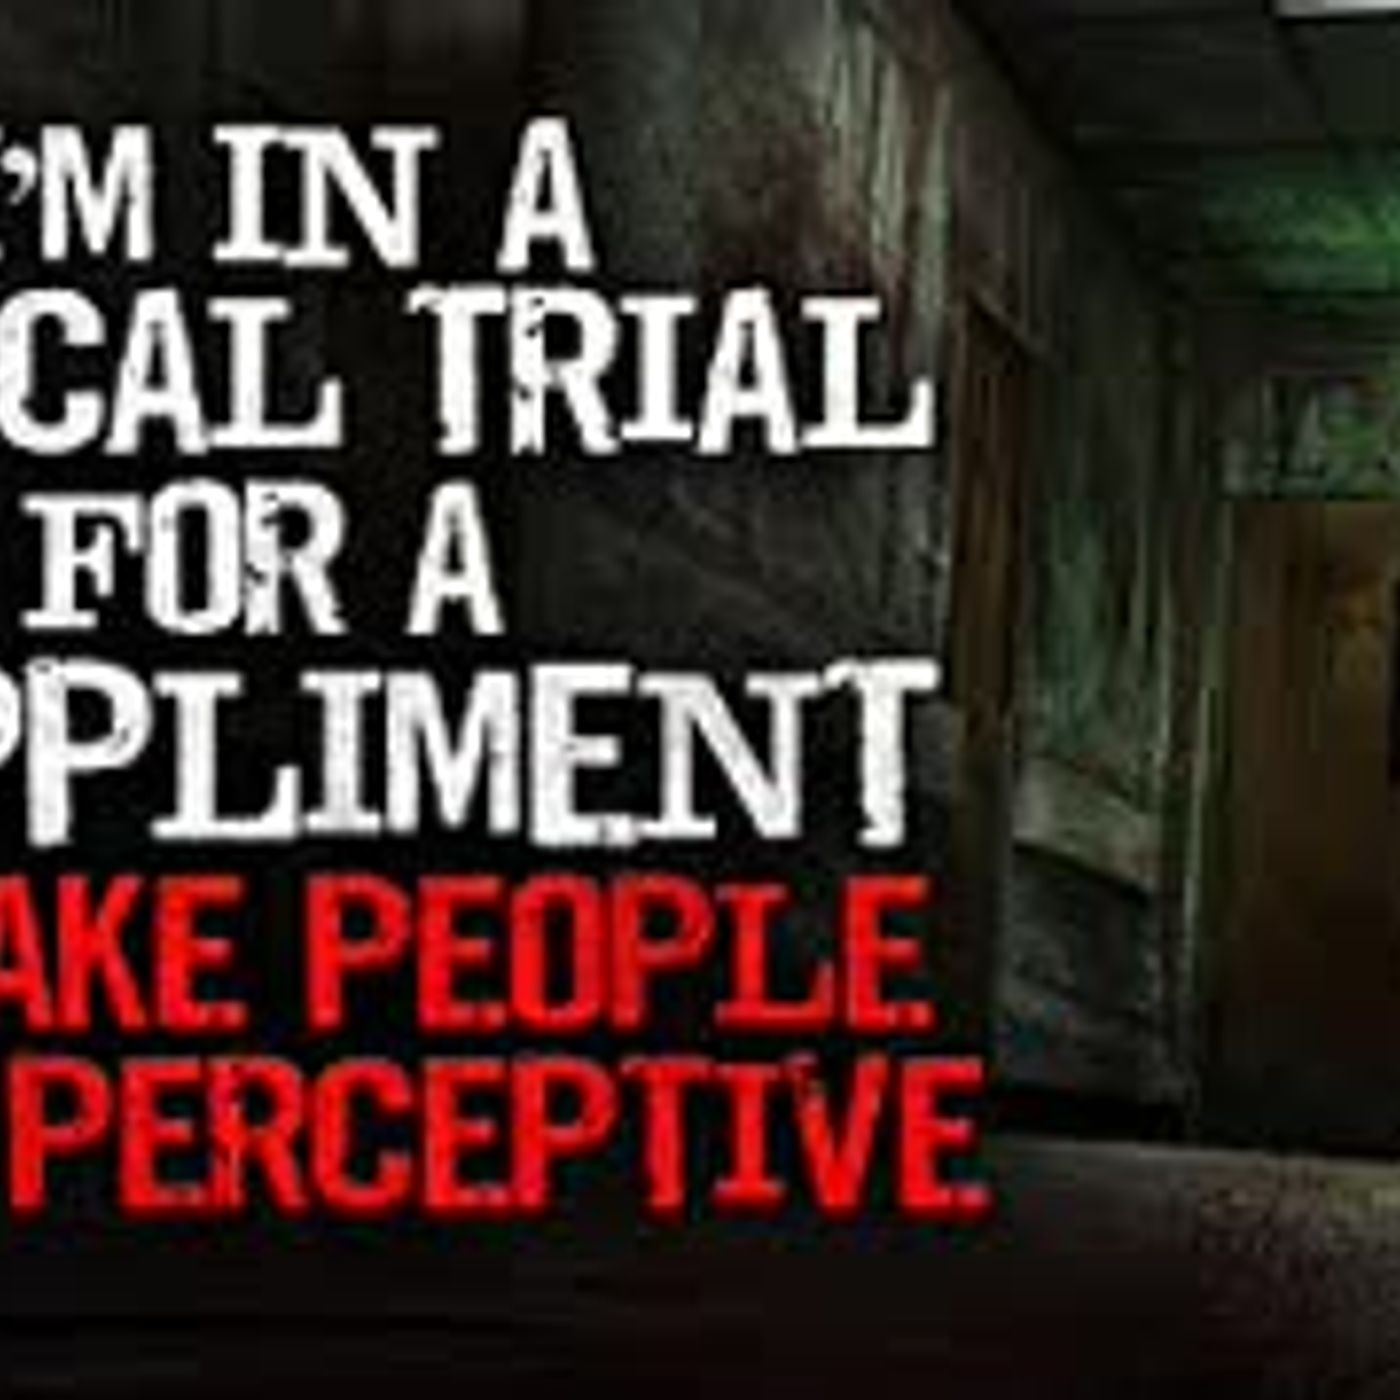 """I'm in a medical trial for a supplement to make people more perceptive"" Creepypasta"